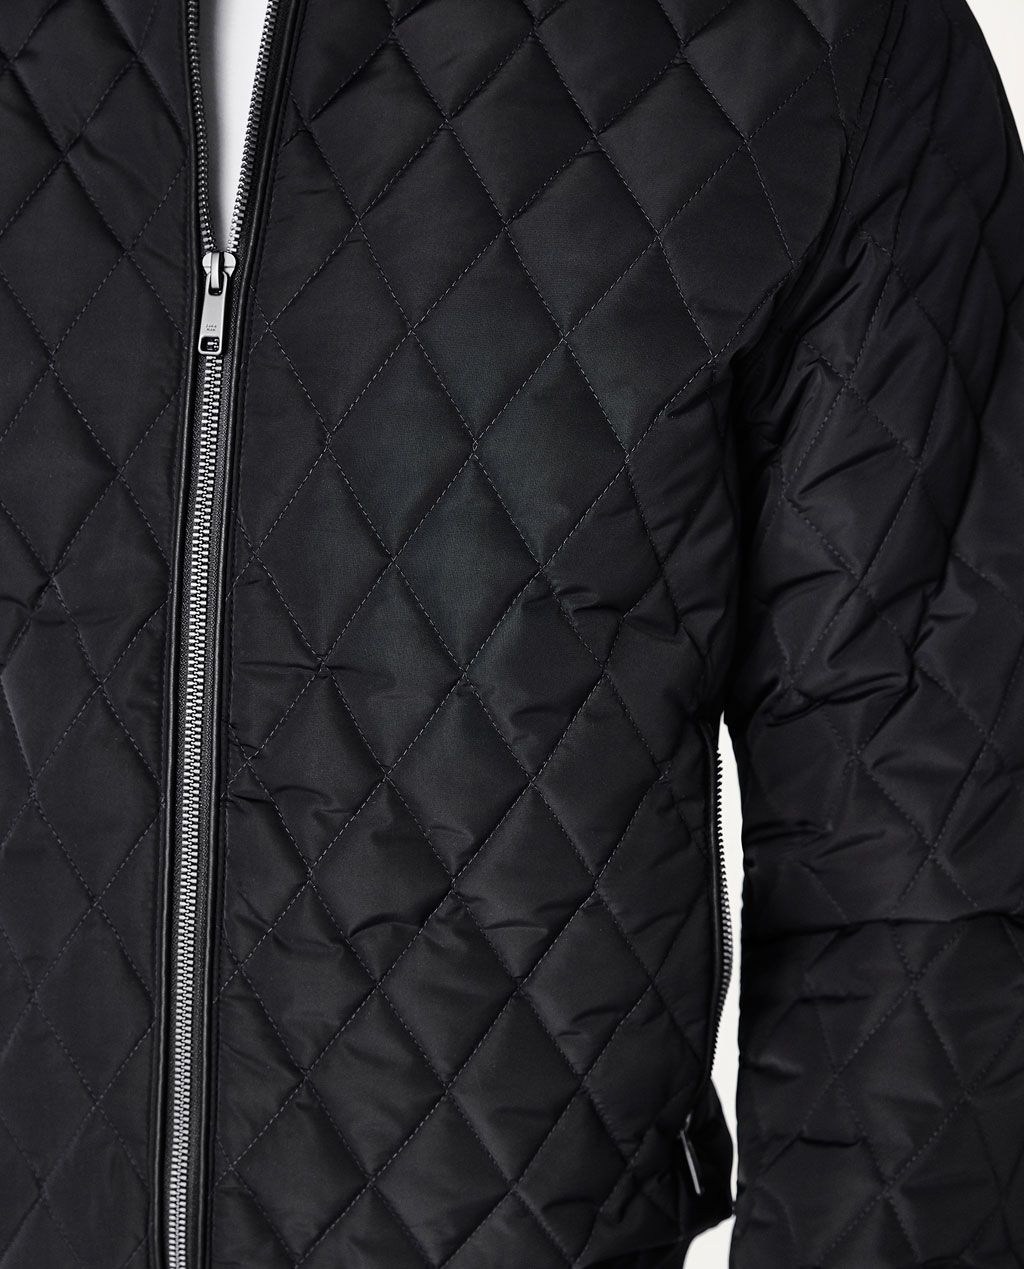 Quilted Bomber Jacket Bombers Man Zara Indonesia Quilted Bomber Jacket Jackets Bomber Jacket [ 1269 x 1024 Pixel ]